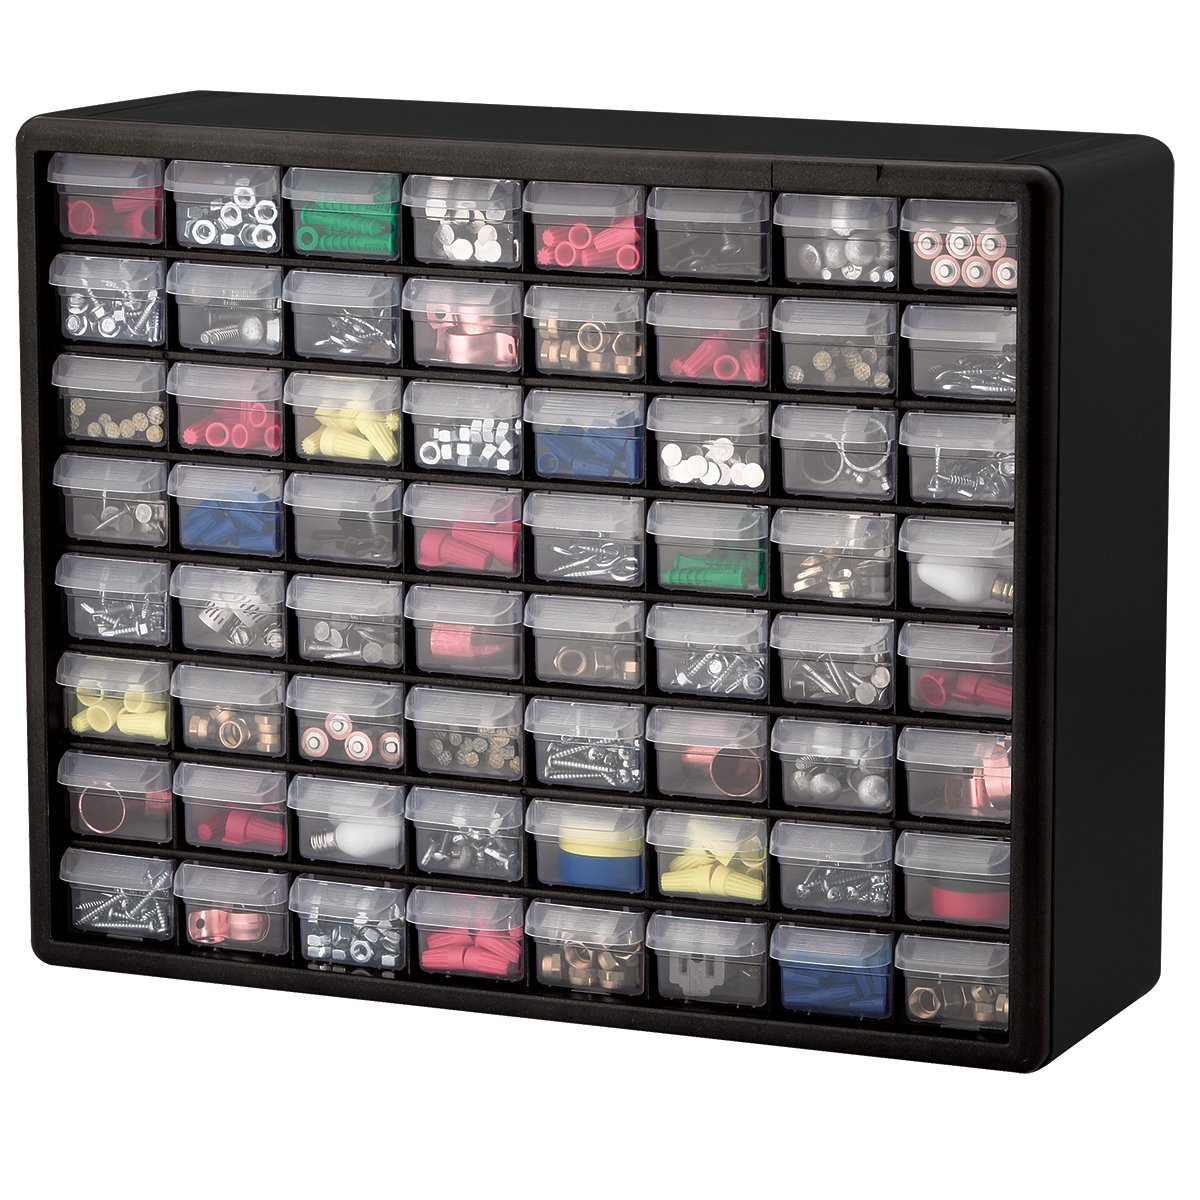 Amazon.com Akro-Mils 10164 64 Drawer Plastic Parts Storage Hardware and Craft Cabinet 20-Inch by 16-Inch by 6-1/2-Inch Black Home Improvement  sc 1 st  Amazon.com : small storage drawers plastic  - Aquiesqueretaro.Com